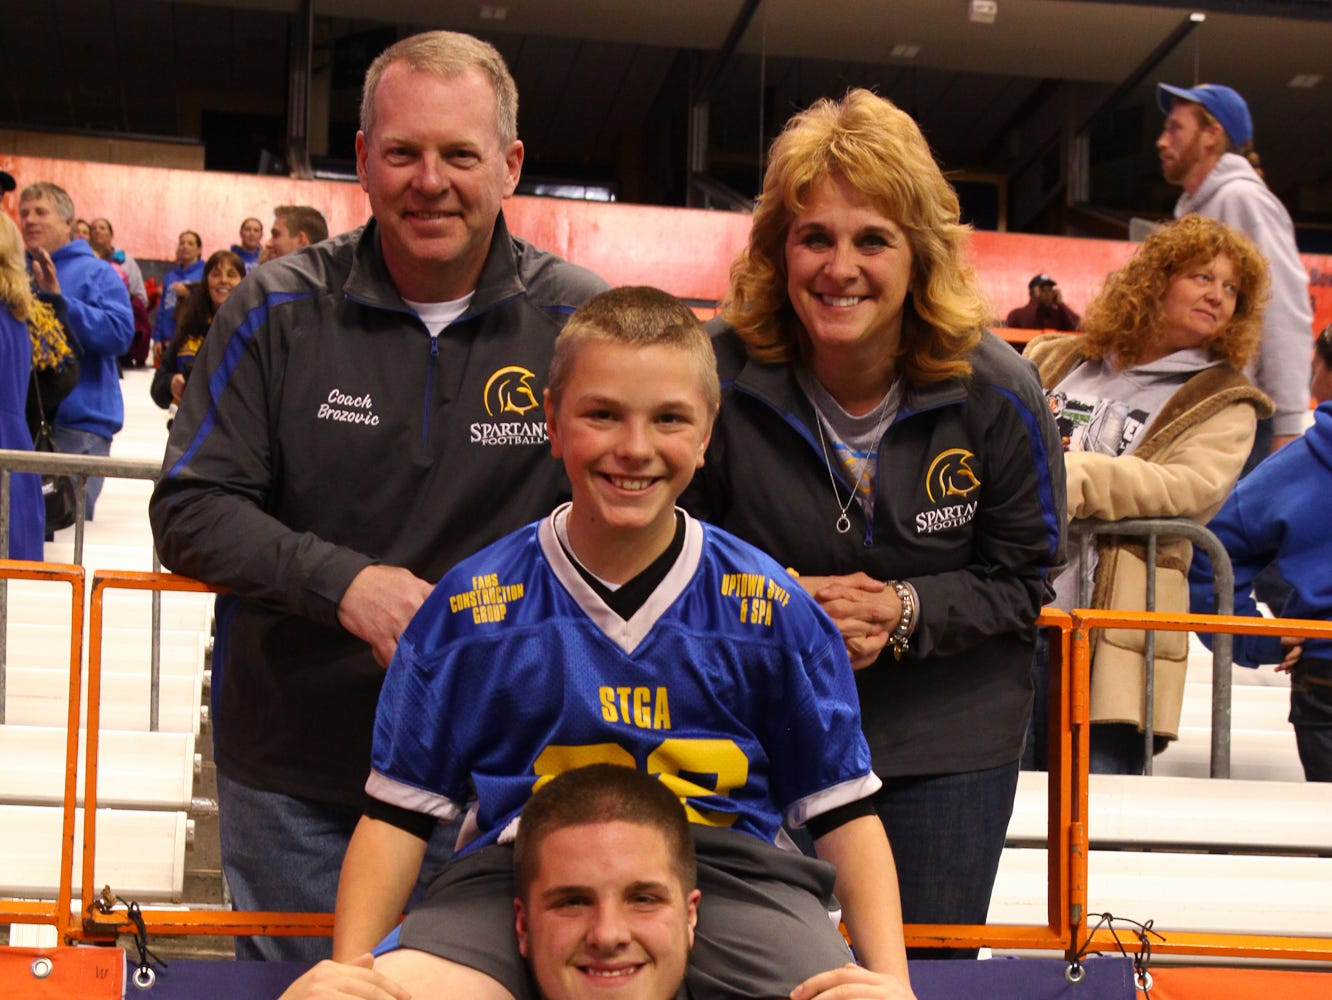 Matthew Brozovic, #50, with his brother, Ryan, and parents, Matt and Theresa, after Maine-Endwell's 2013 state title victory at the Carrier Dome in Syracuse.